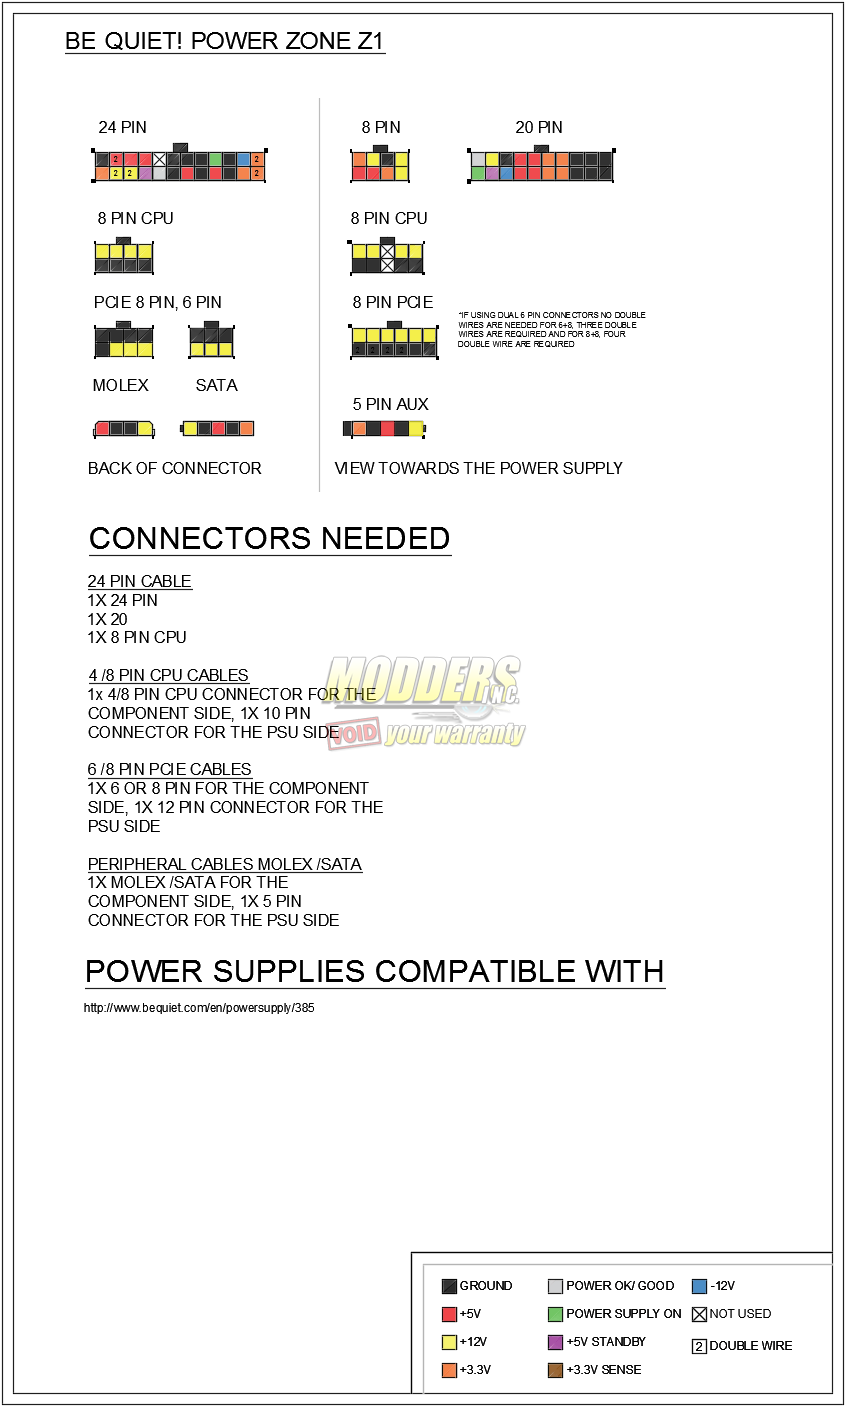 Be Quite! Power zone Z1 power supply pinout